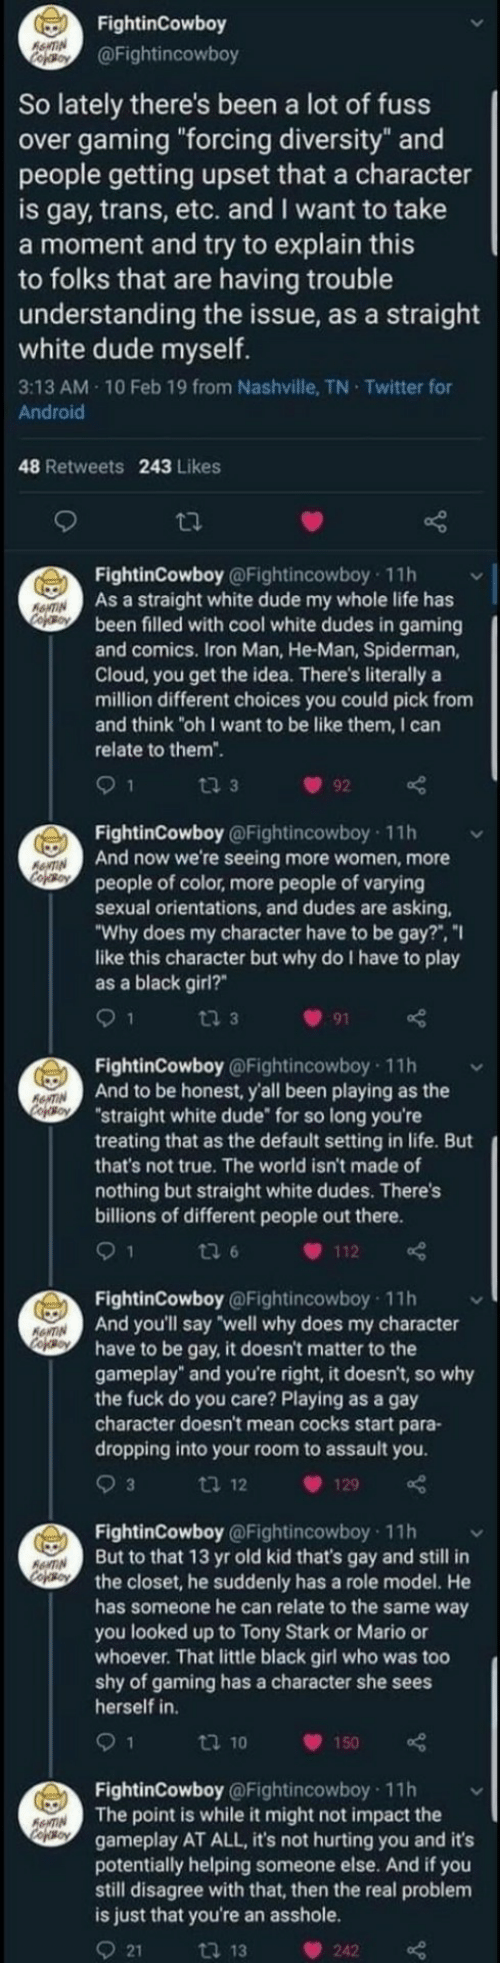 "iron: FightinCowboy  RewTIN  Cefoy  @Fightincowboy  So lately there's been a lot of fuss  over gaming ""forcing diversity"" and  people getting upset that a character  is gay, trans, etc. and I want to take  a moment and try to explain this  to folks that are having trouble  understanding the issue, as a straight  white dude myself.  3:13 AM 10 Feb 19 from Nashville, TN Twitter for  Android  48 Retweets 243 Likes  FightinCowboy @Fightincowboy 11h  As a straight white dude my whole life has  been filled with cool white dudes in gaming  and comics. Iron Man, He-Man, Spiderman,  Cloud, you get the idea. There's literally a  million different choices you could pick from  and think ""oh I want to be like them, I can  ANTIN  Cooy  relate to them"".  ti 3  92  FightinCowboy @Fightincowboy 11h  And now we're seeing more women, more  people of color, more people of varying  sexual orientations, and dudes are asking  ""Why does my character have to be gay?"", ""I  like this character but why do I have to play  as a black girl?  ANTIN  CofoBoy  9 1  ti 3  91  FightinCowboy @Fightincowboy 11h  And to be honest, y'all been playing as the  ""straight white dude for so long you're  treating that as the default setting in life. But  that's not true. The world isn't made of  RNTIN  CopOBoY  nothing but straight white dudes. There's  billions of different people out there.  1  ti 6  112  FightinCowboy @Fightincowboy 11h  And you'll say well why does my character  have to be gay, it doesn't matter to the  gameplay"" and you're right, it doesn't, so why  the fuck do you care? Playing as a gay  character doesn't mean cocks start para-  dropping into your room to assault you  ANTIN  cofeo  3  ti 12  129  FightinCowboy @Fightincowboy 11h  But to that 13 yr old kid that's gay and still in  the closet, he suddenly has a role model. He  has someone he can relate to the same way  you looked up to Tony Stark or Mario or  whoever. That little black girl who was too  shy of gaming has a character she sees  herself in  AANTIN  Cojso  9 1  t 10  150  FightinCowboy @Fightincowboy 11h  The point is while it might not impact the  gameplay AT ALL, it's not hurting you and it's  potentially helping someone else. And if you  still disagree with that, then the real problem  is just that you're an asshole.  AeNTIN  Cofeso  21  ti 13  242"